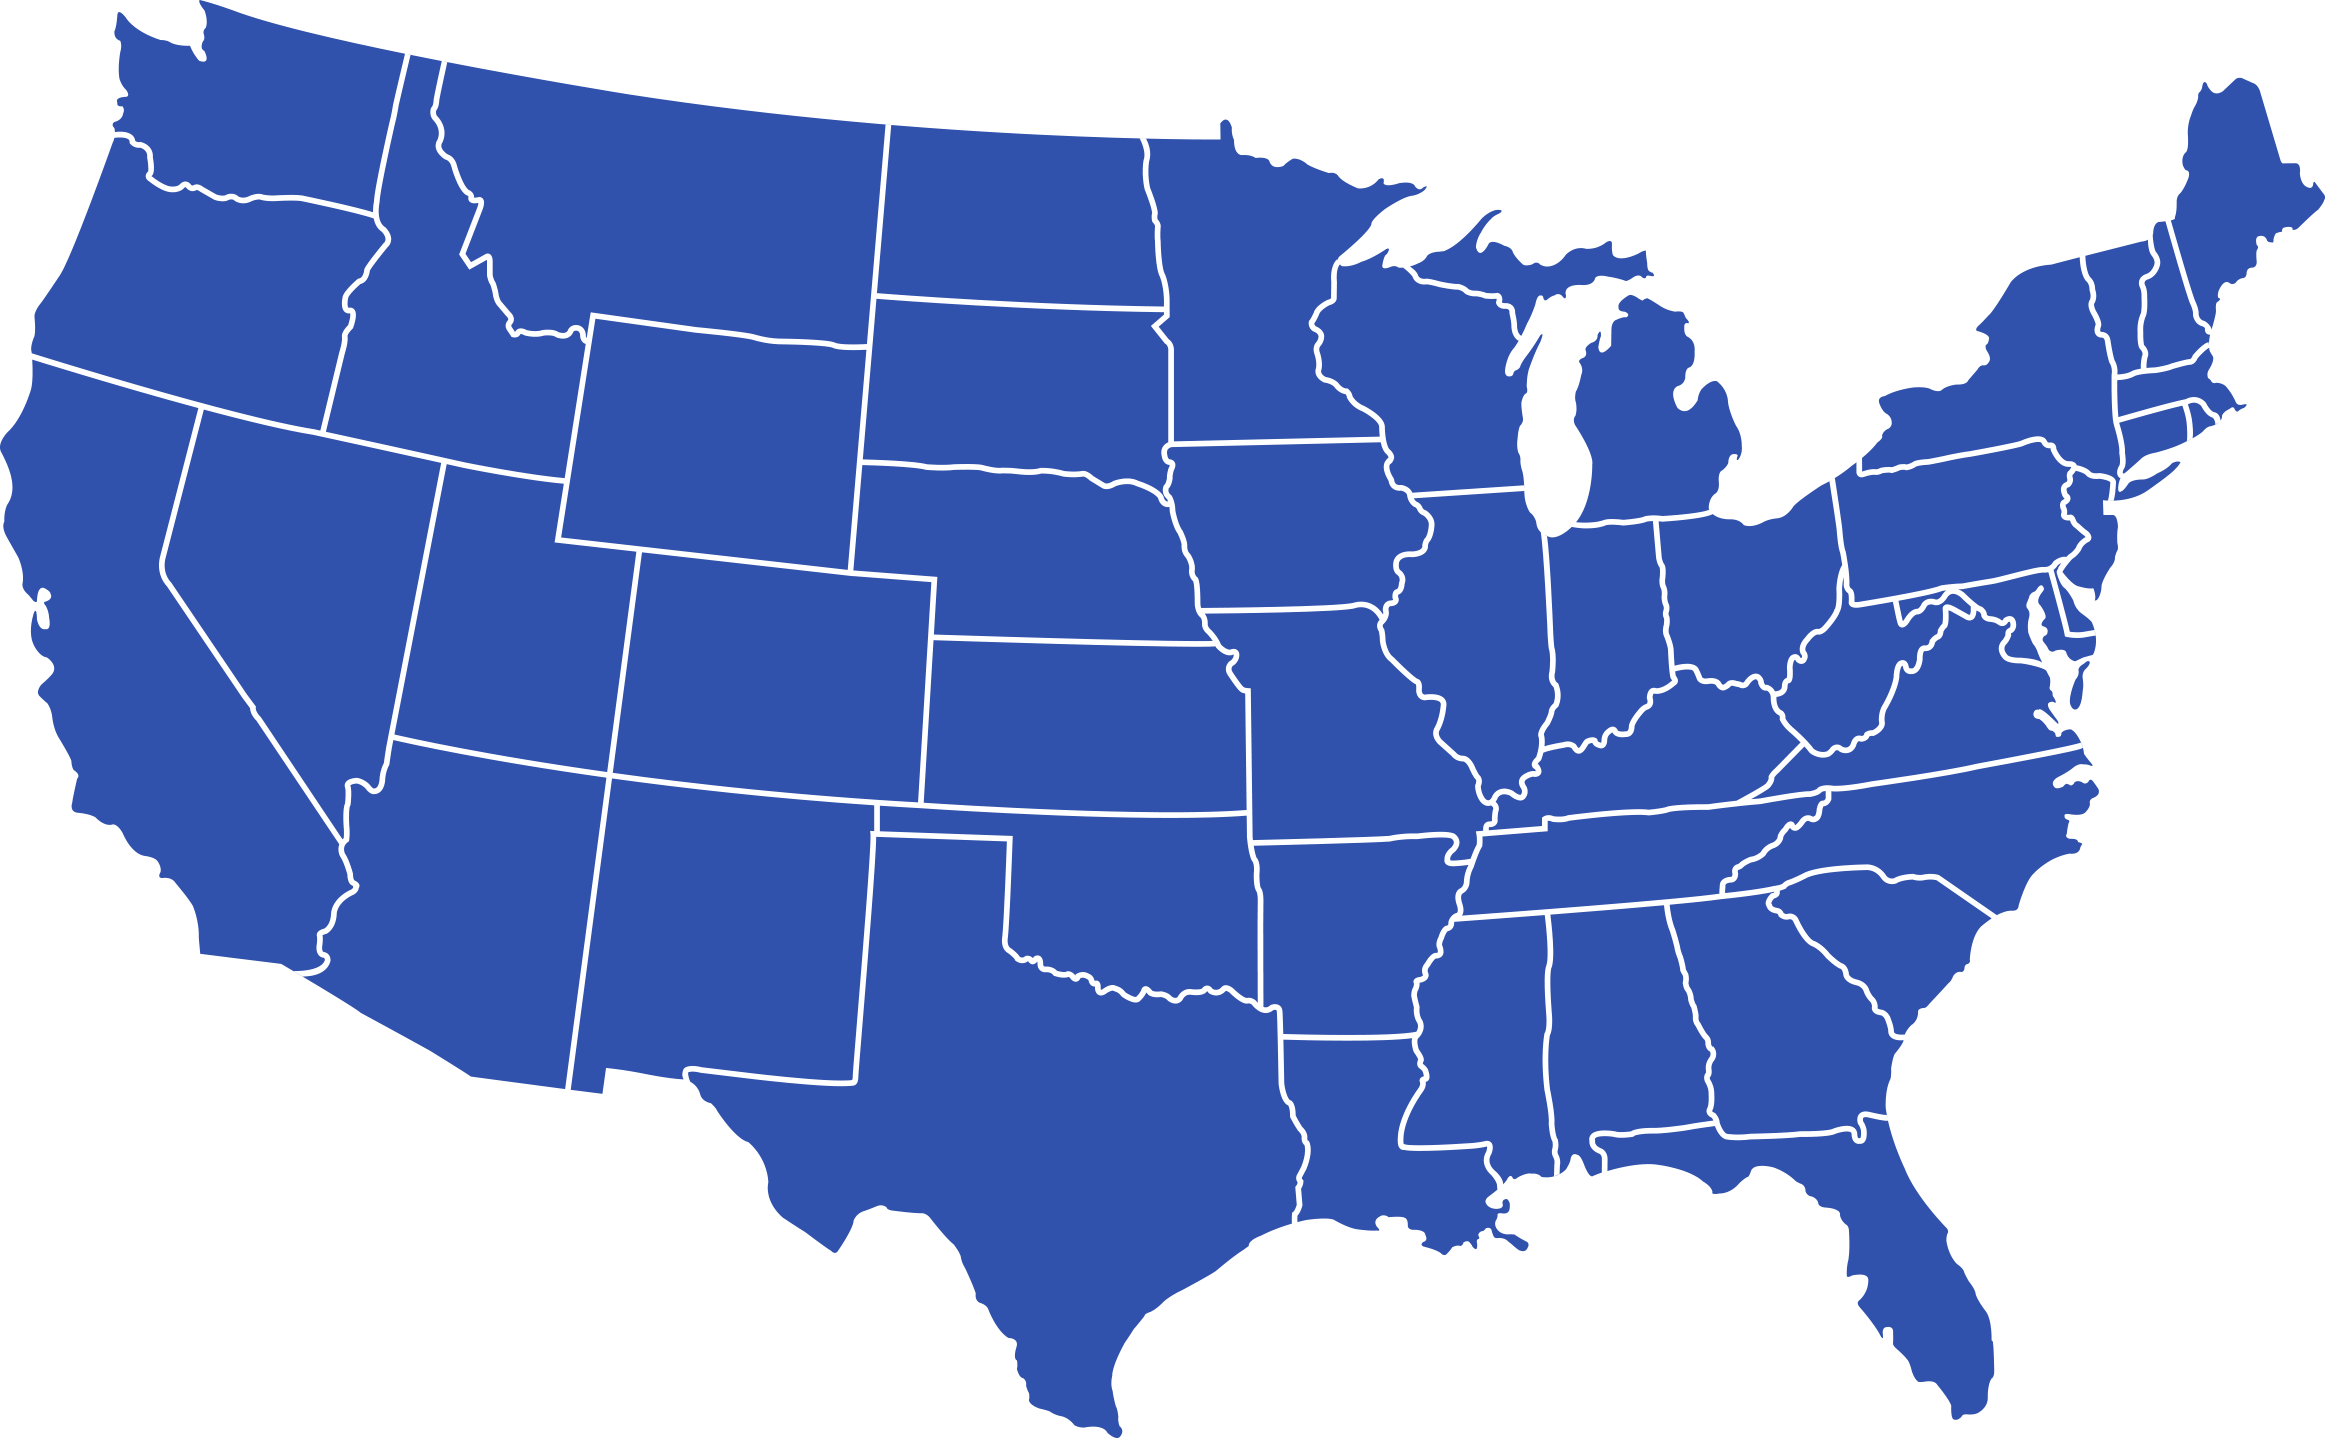 Agree Map